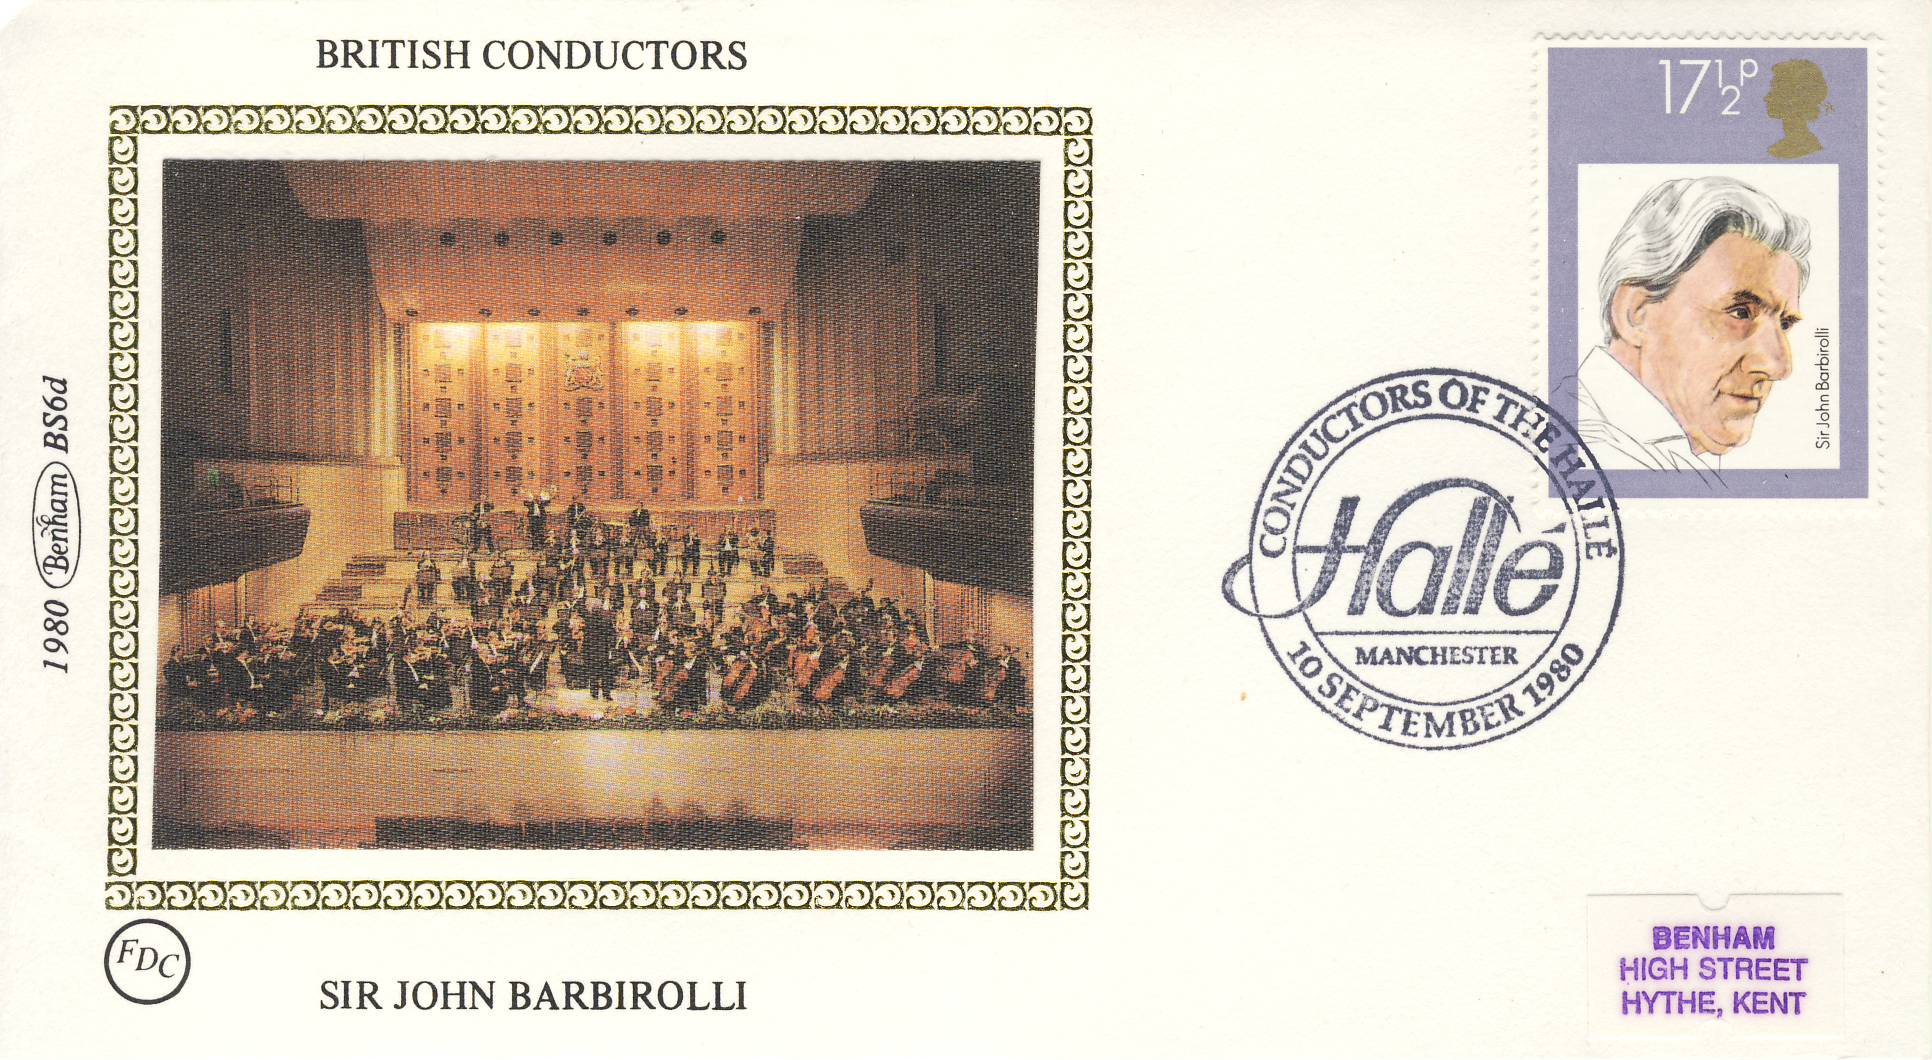 1980 BS6d Sir John Barbirolli BRITISH CONDUCTORS stamps Benham Sm Silk Cover refF511Postmarked HALLE MANCHESTER. Very good condition. Unsealed with insert card. Ideal for gift